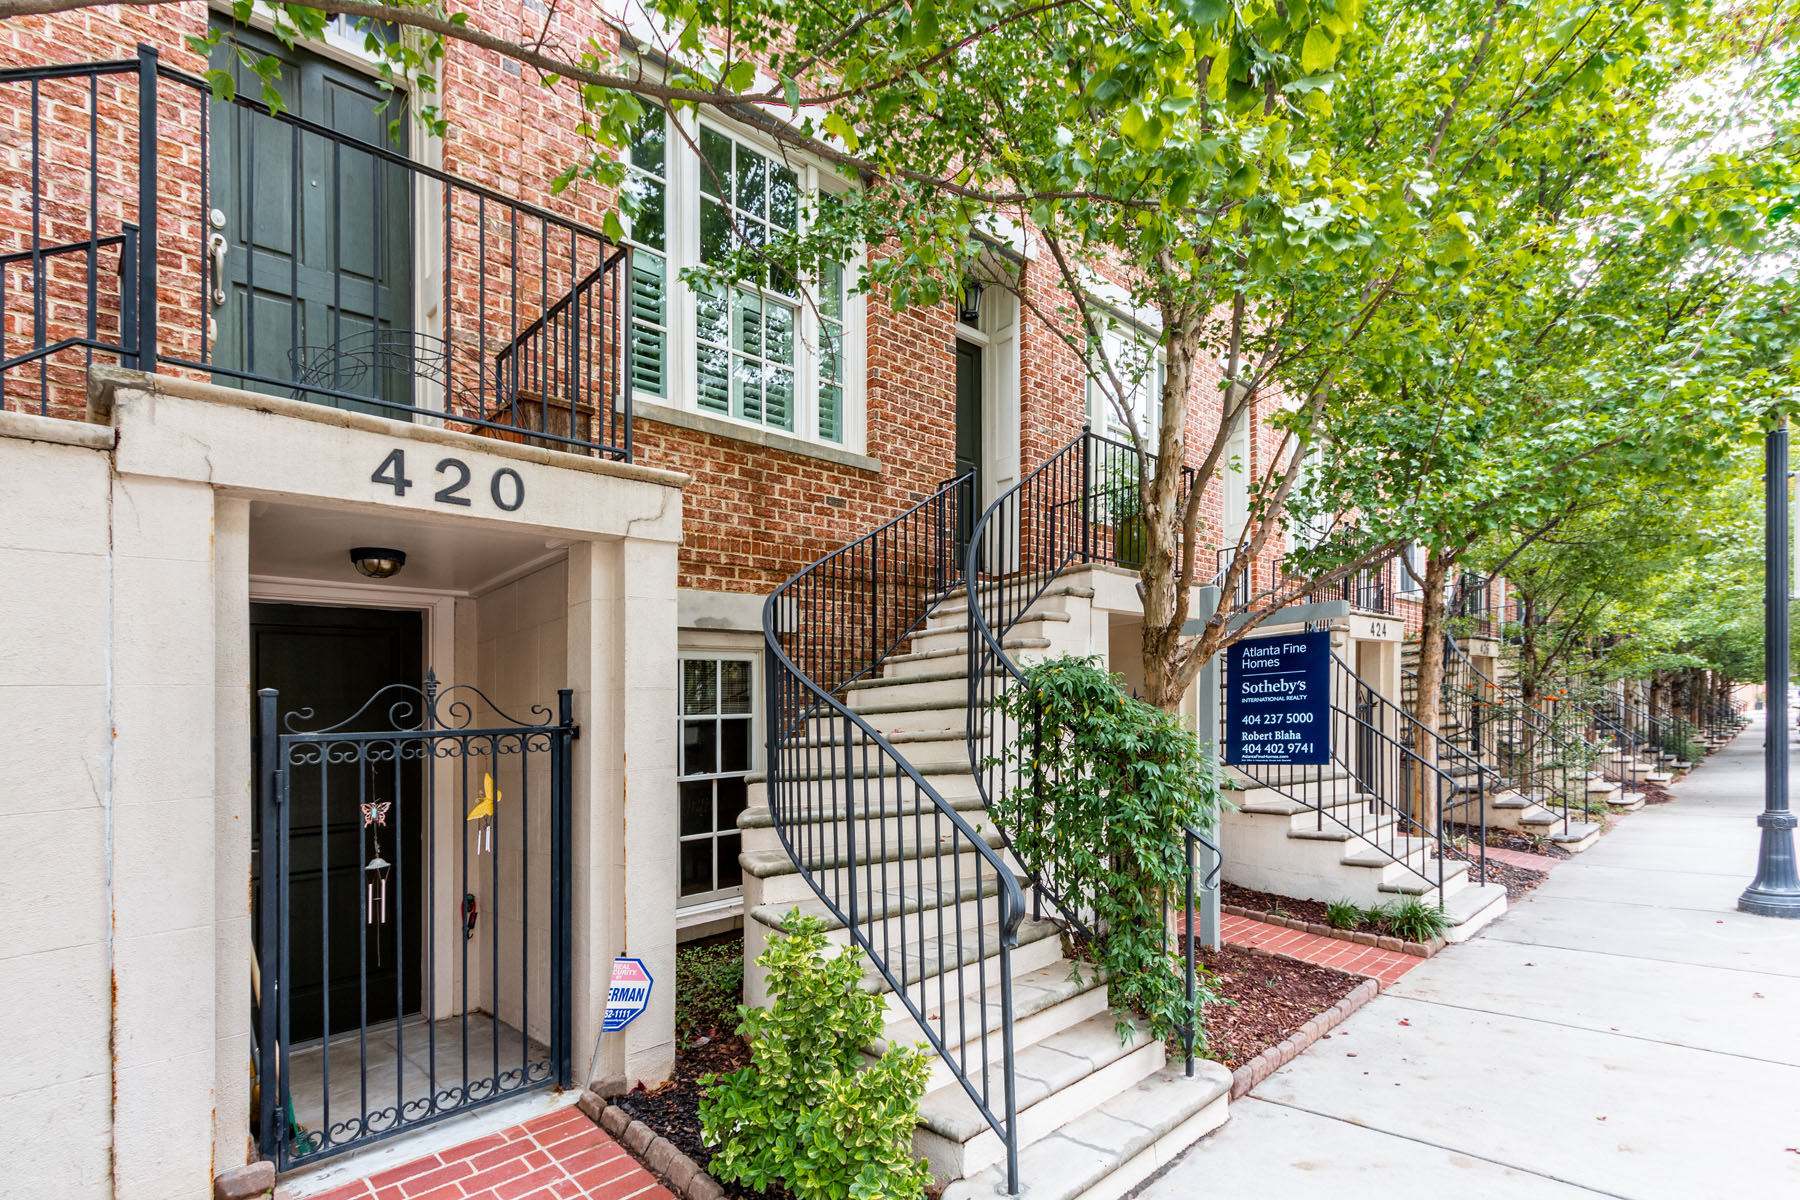 Townhouse for Sale at Fabulous Town Home with Roof Top Deck in Sought After Glenwood Park 422 Bill Kennedy Way SE Atlanta, Georgia 30316 United States